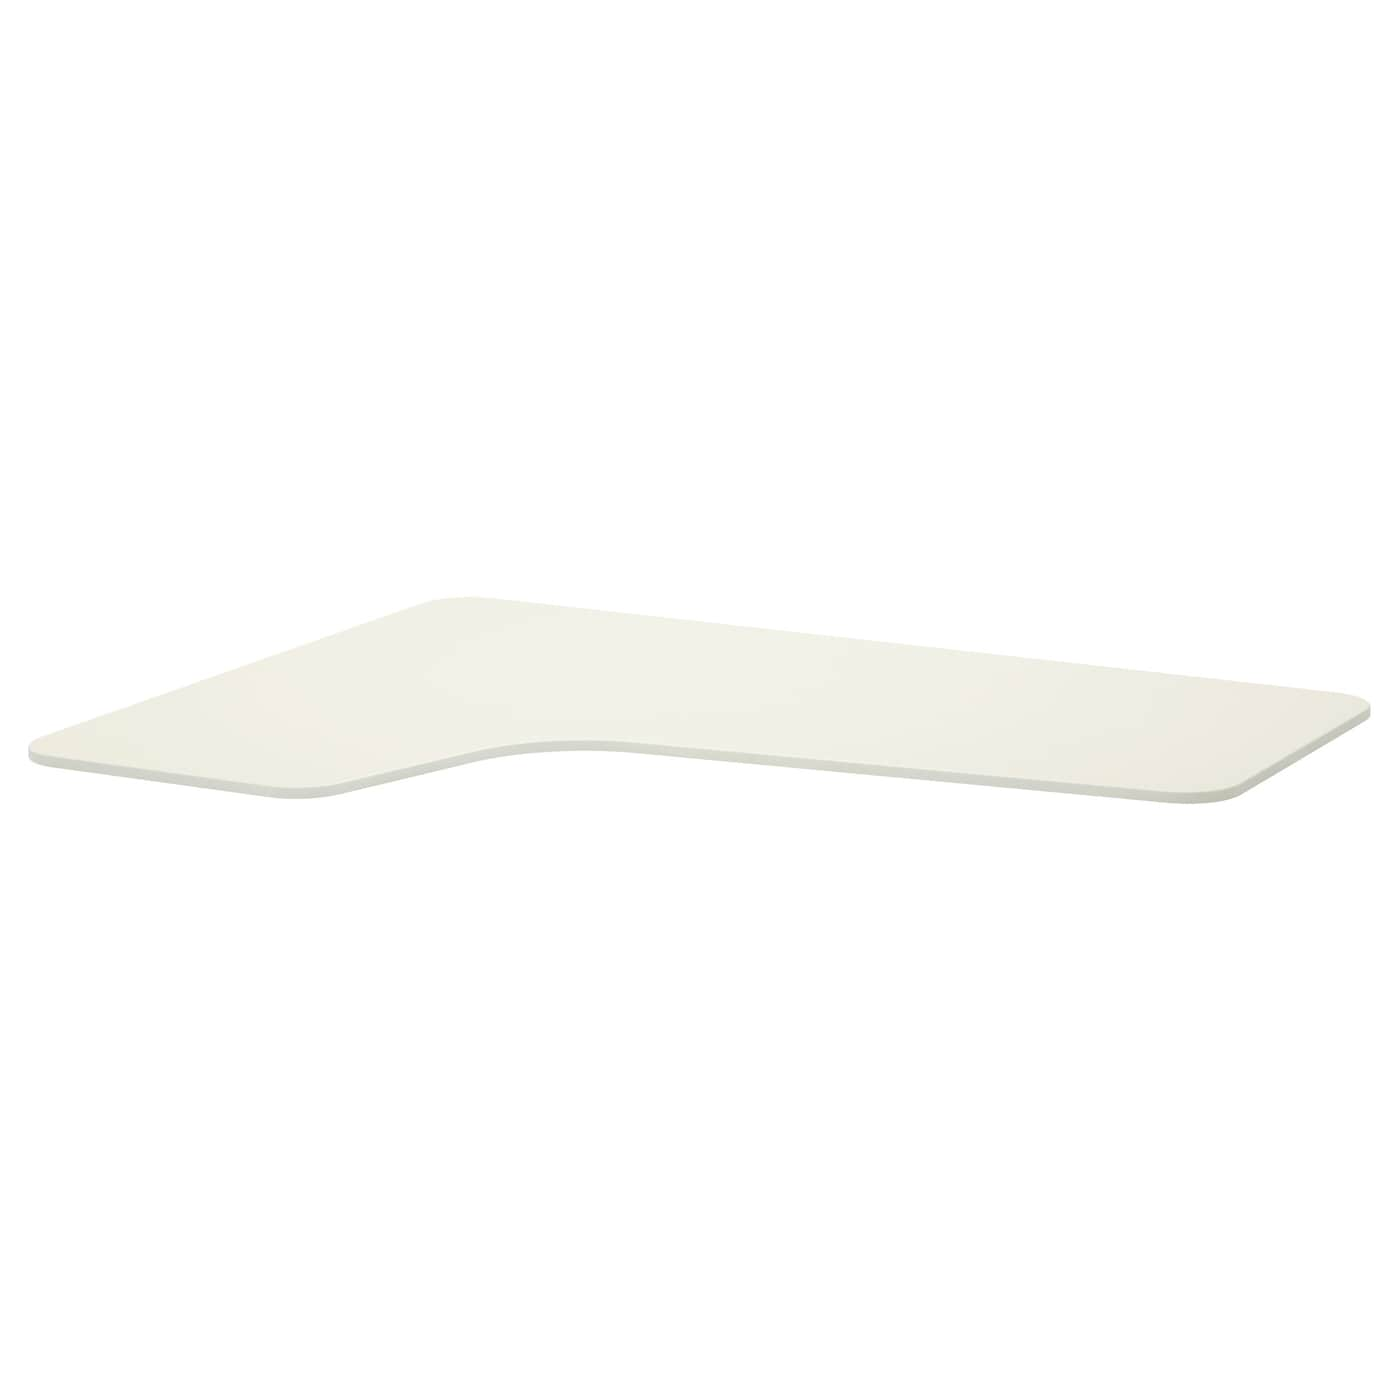 IKEA BEKANT left-hand corner table top